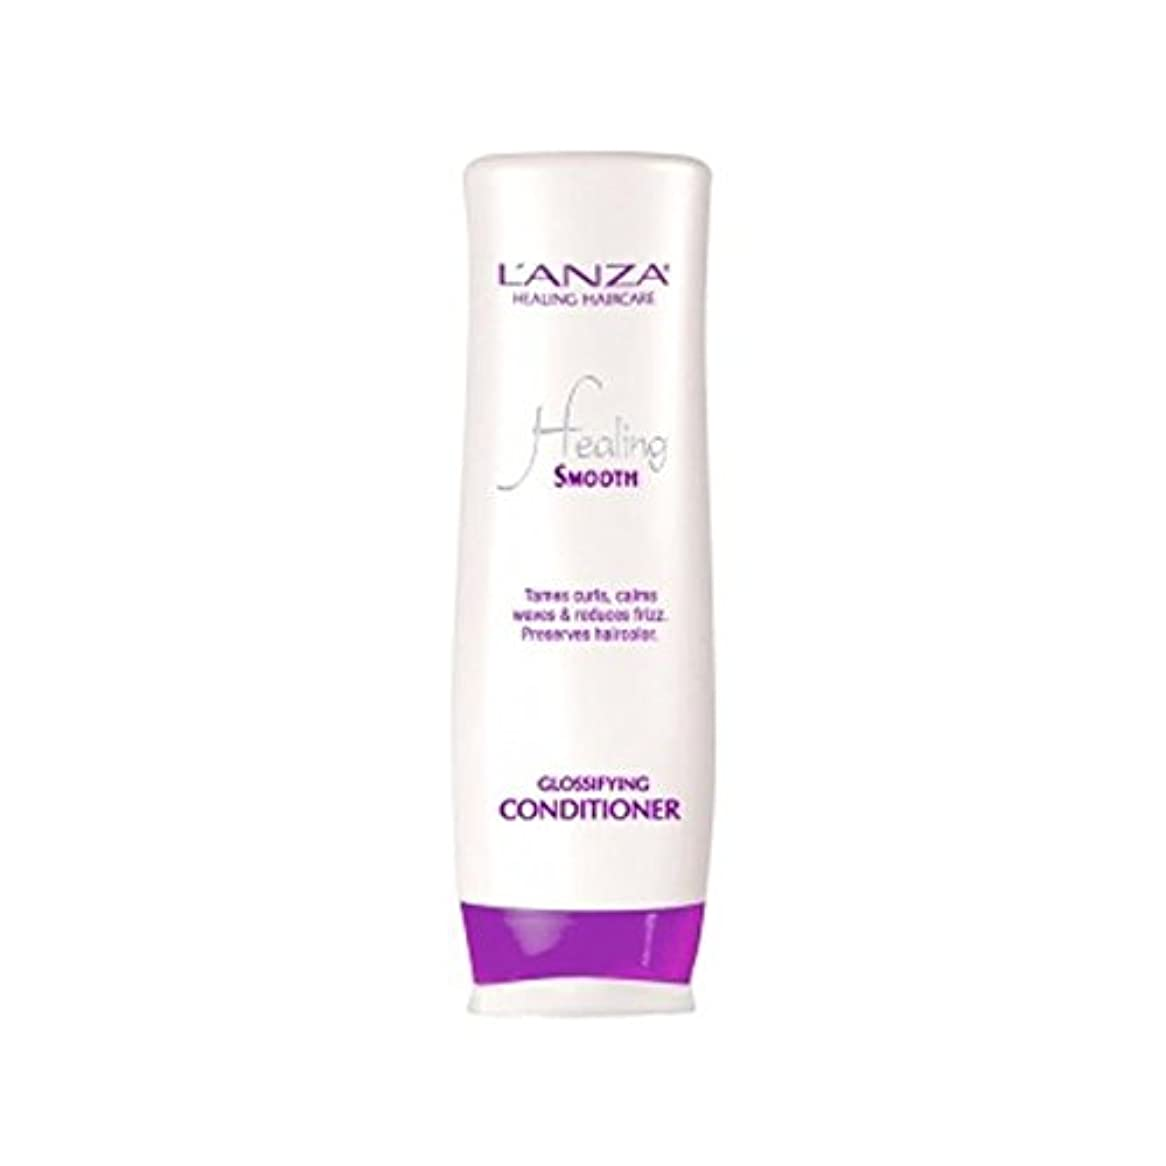 L'Anza Healing Smooth Glossifying Conditioner (250ml) (Pack of 6) - スムーズなコンディショナーを癒し'アンザ(250ミリリットル) x6 [並行輸入品]